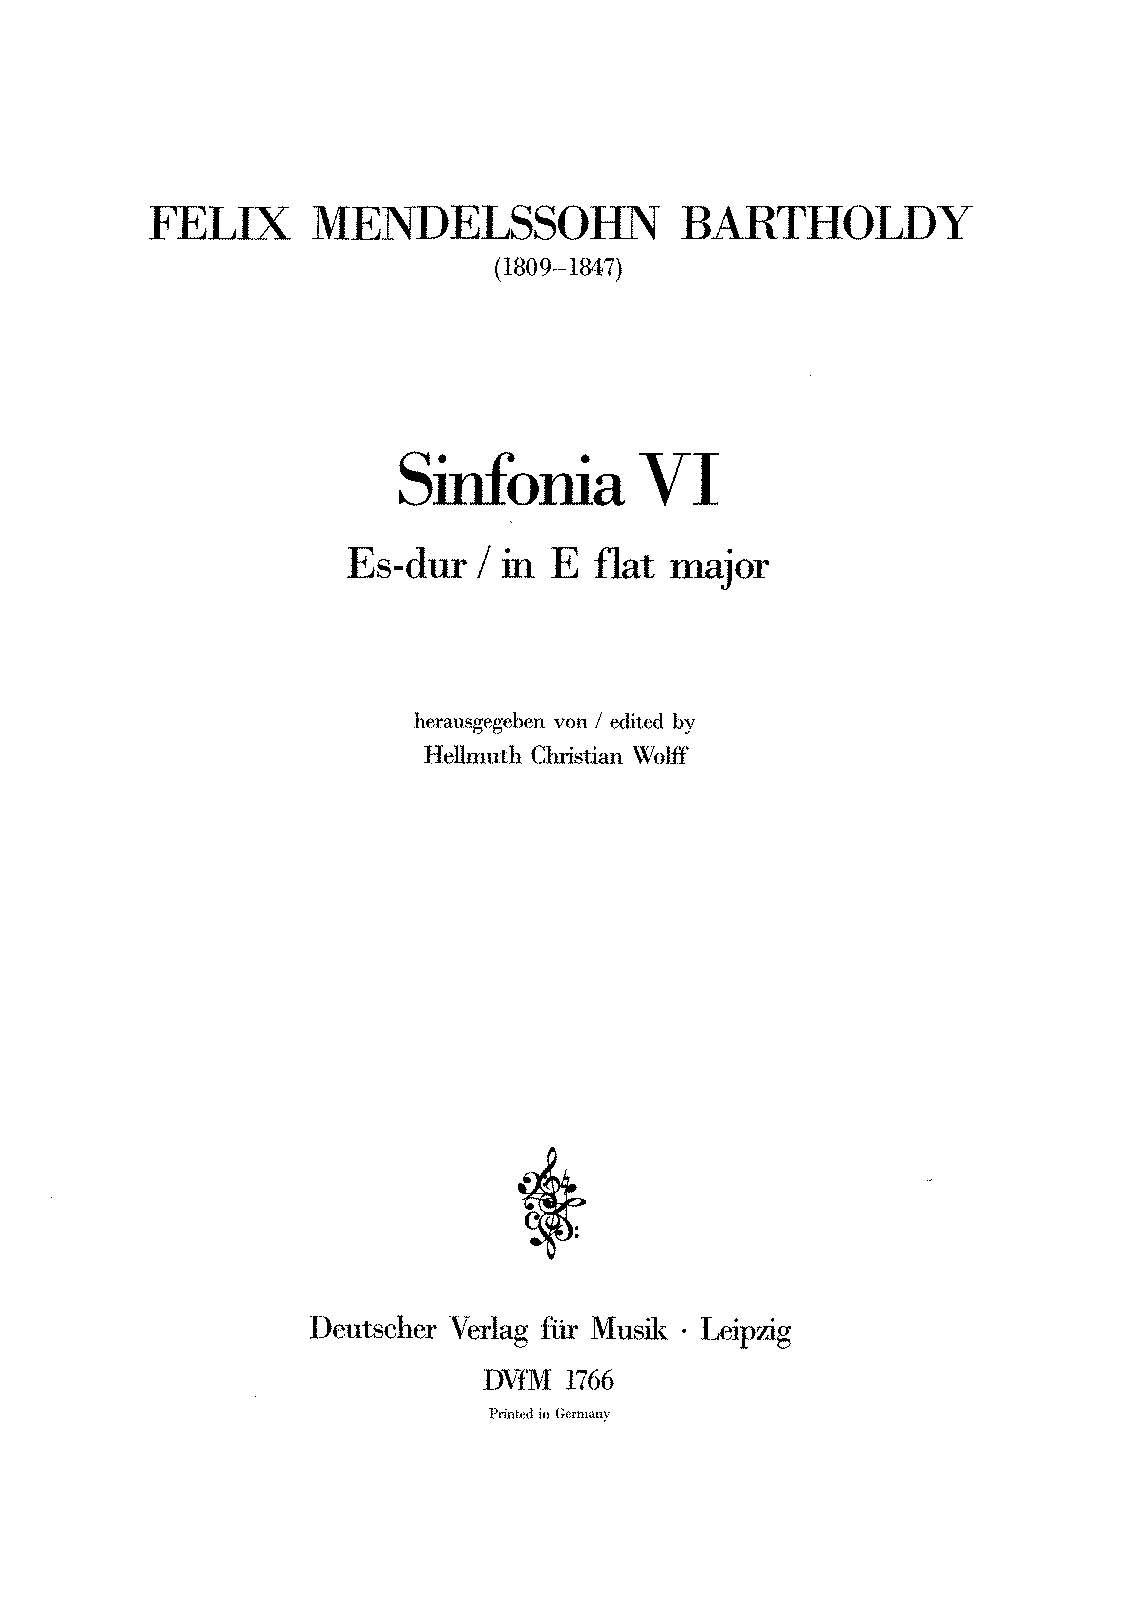 PMLP207410-Mendelssohn, Felix - Sinfonia for String no. 06 in E flat major MWV N 6.pdf